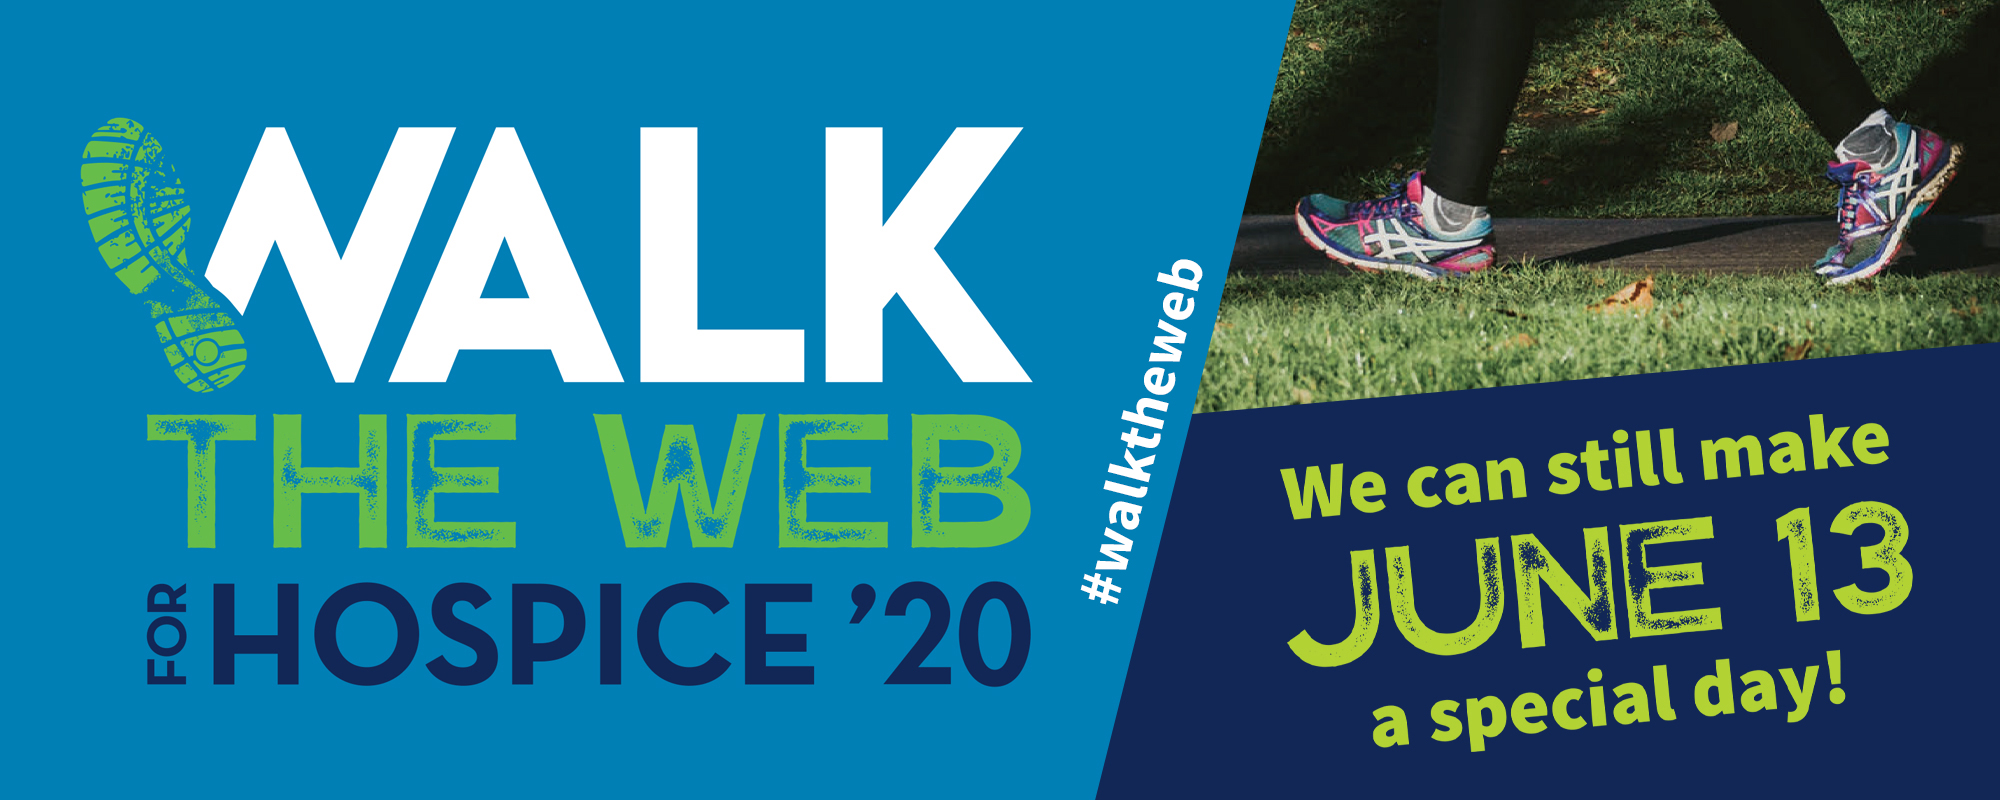 Walk the Web - Saturday, June 13, 2020 - 10:30 am